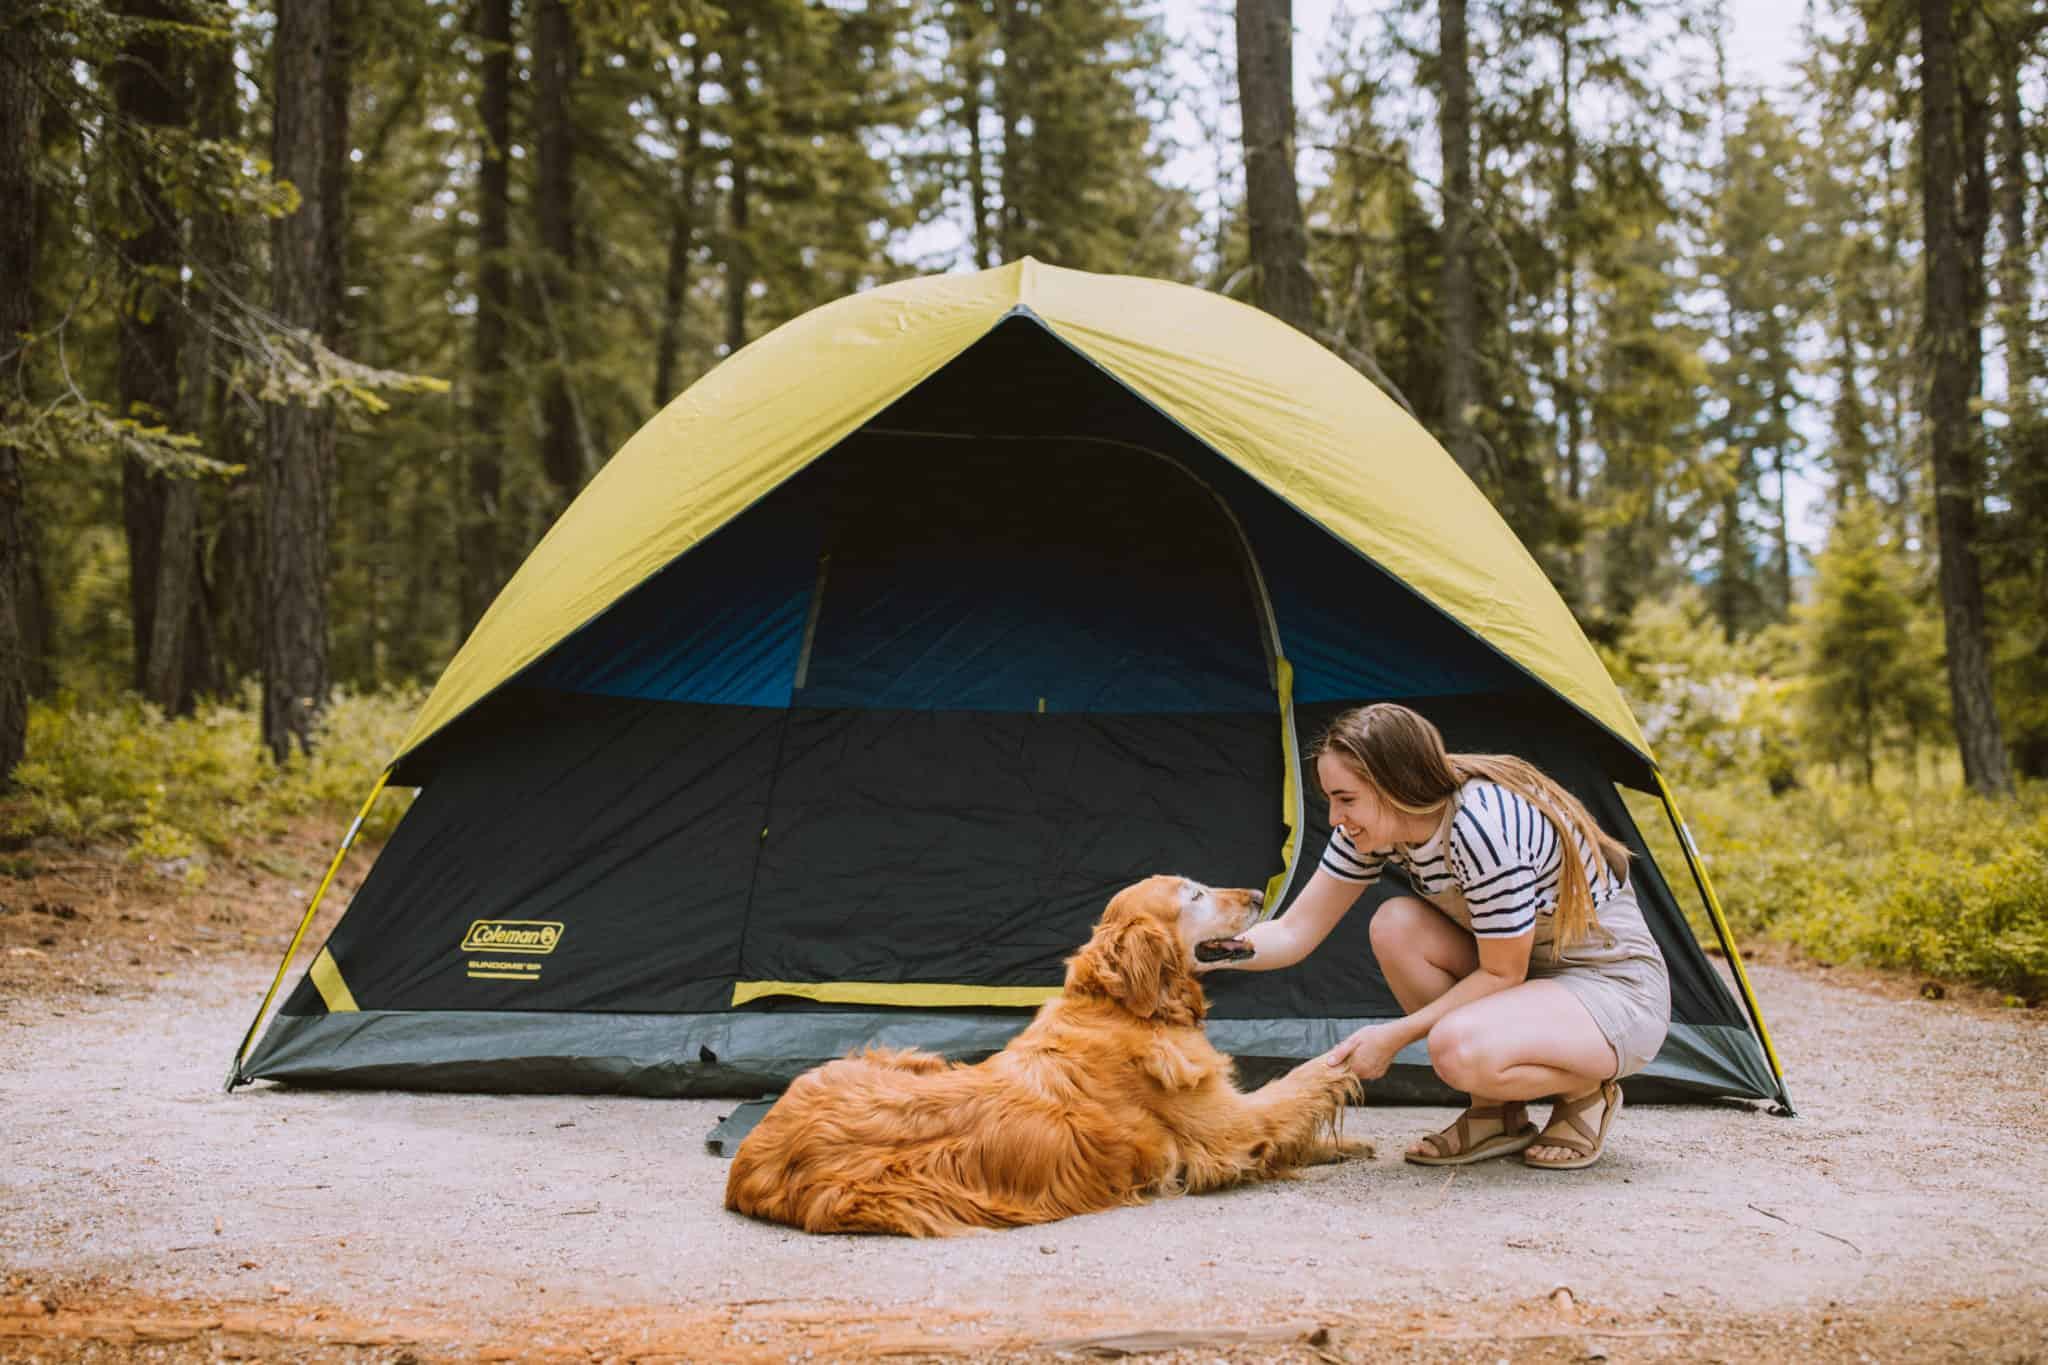 Camping Checklist - Tent